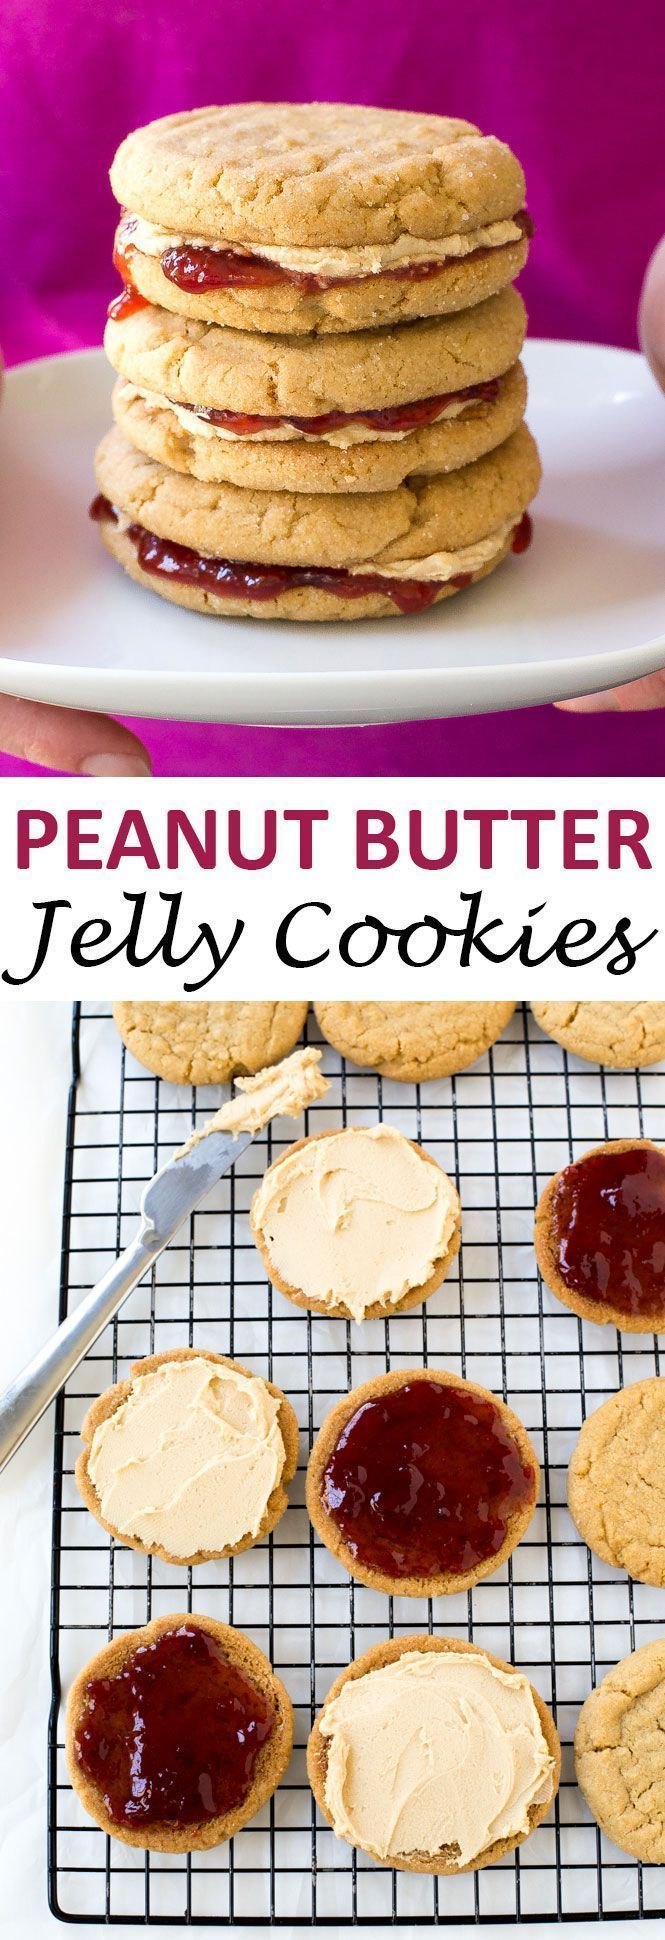 Peanut Butter and Jelly Sandwich Cookies! Peanut Butter cookies ...